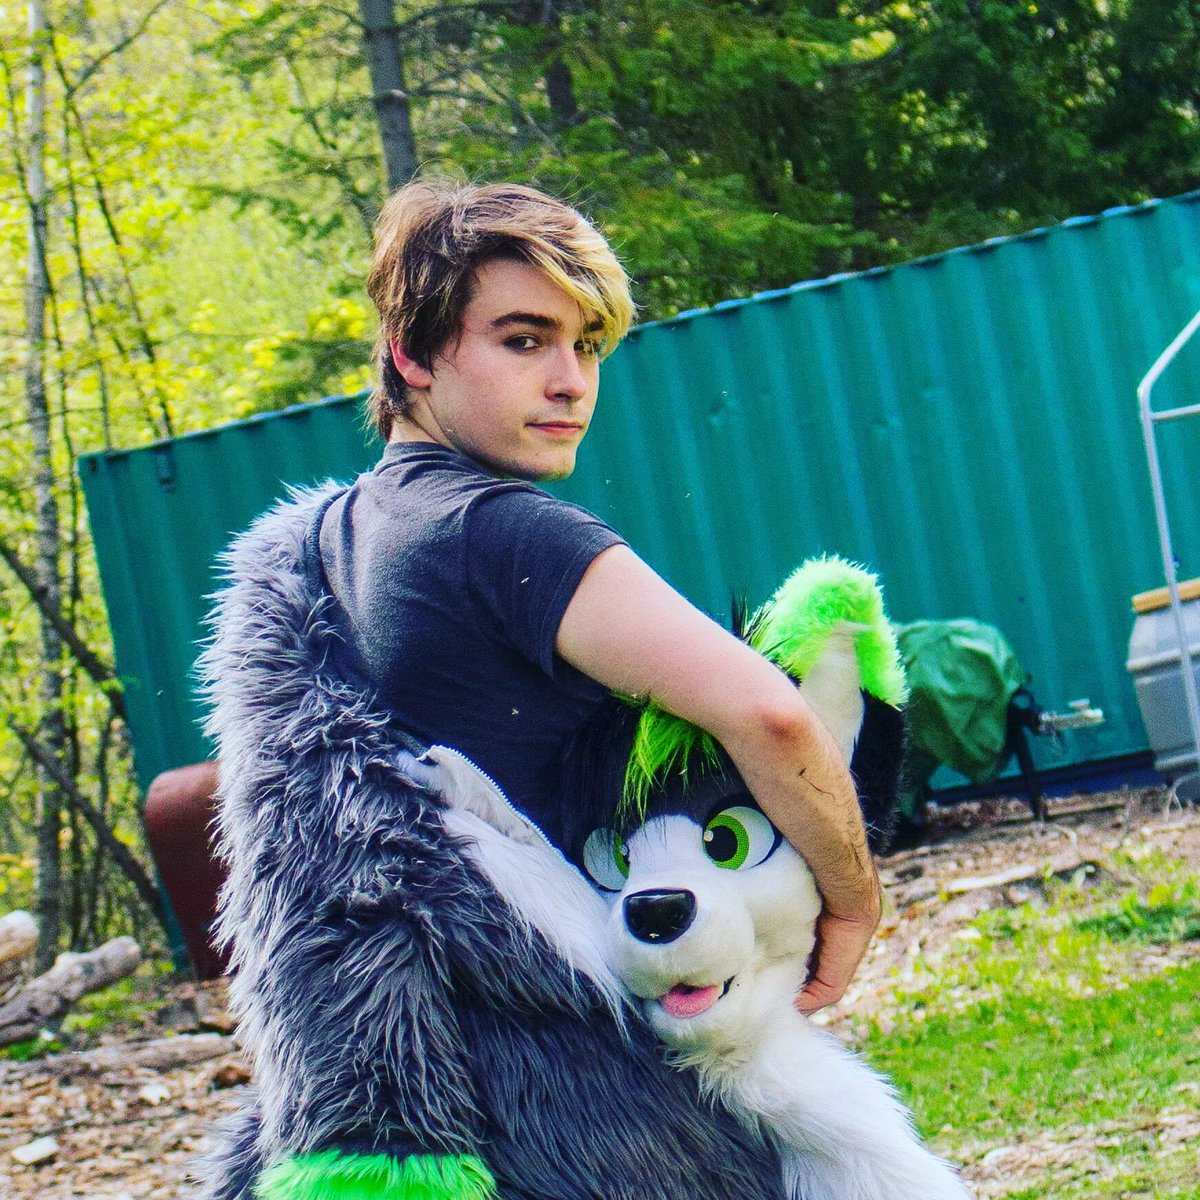 On the outside I&#39;m a peaceful positive furry ... But on the inside I&#39;m actually a James Bond Villain with a secret evil doomsday plan  #furry #furries #fursuit #furryfandom <br>http://pic.twitter.com/dU9wy9Jm3H